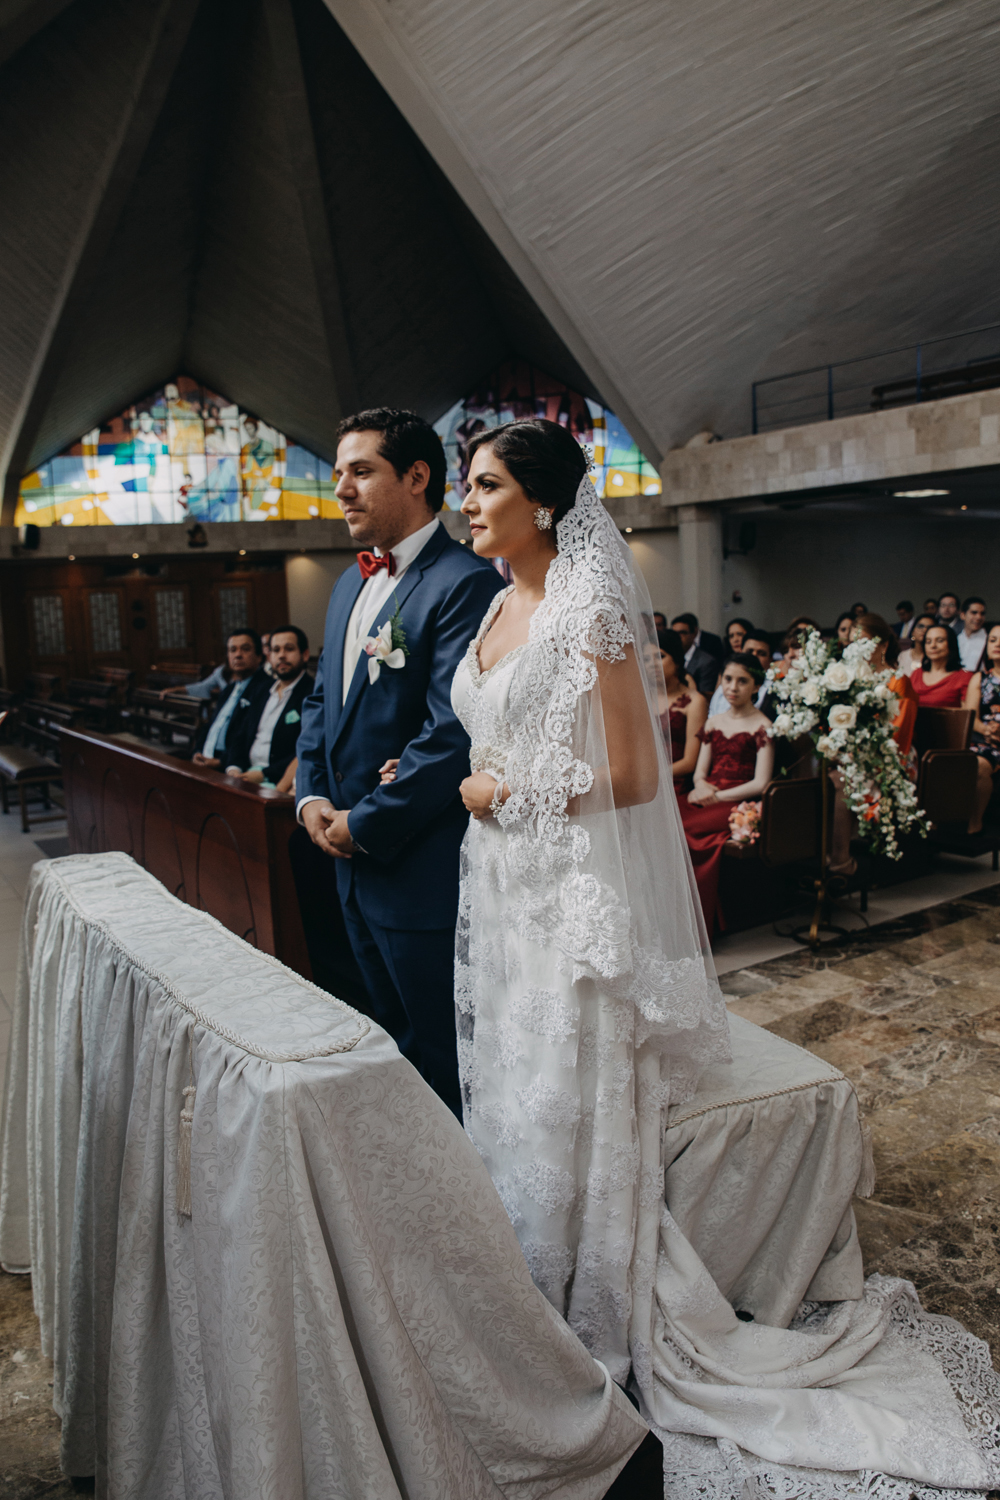 Michelle-Agurto-Fotografia-Bodas-Ecuador-Destination-Wedding-Photographer-Cristi-Luis-32.JPG